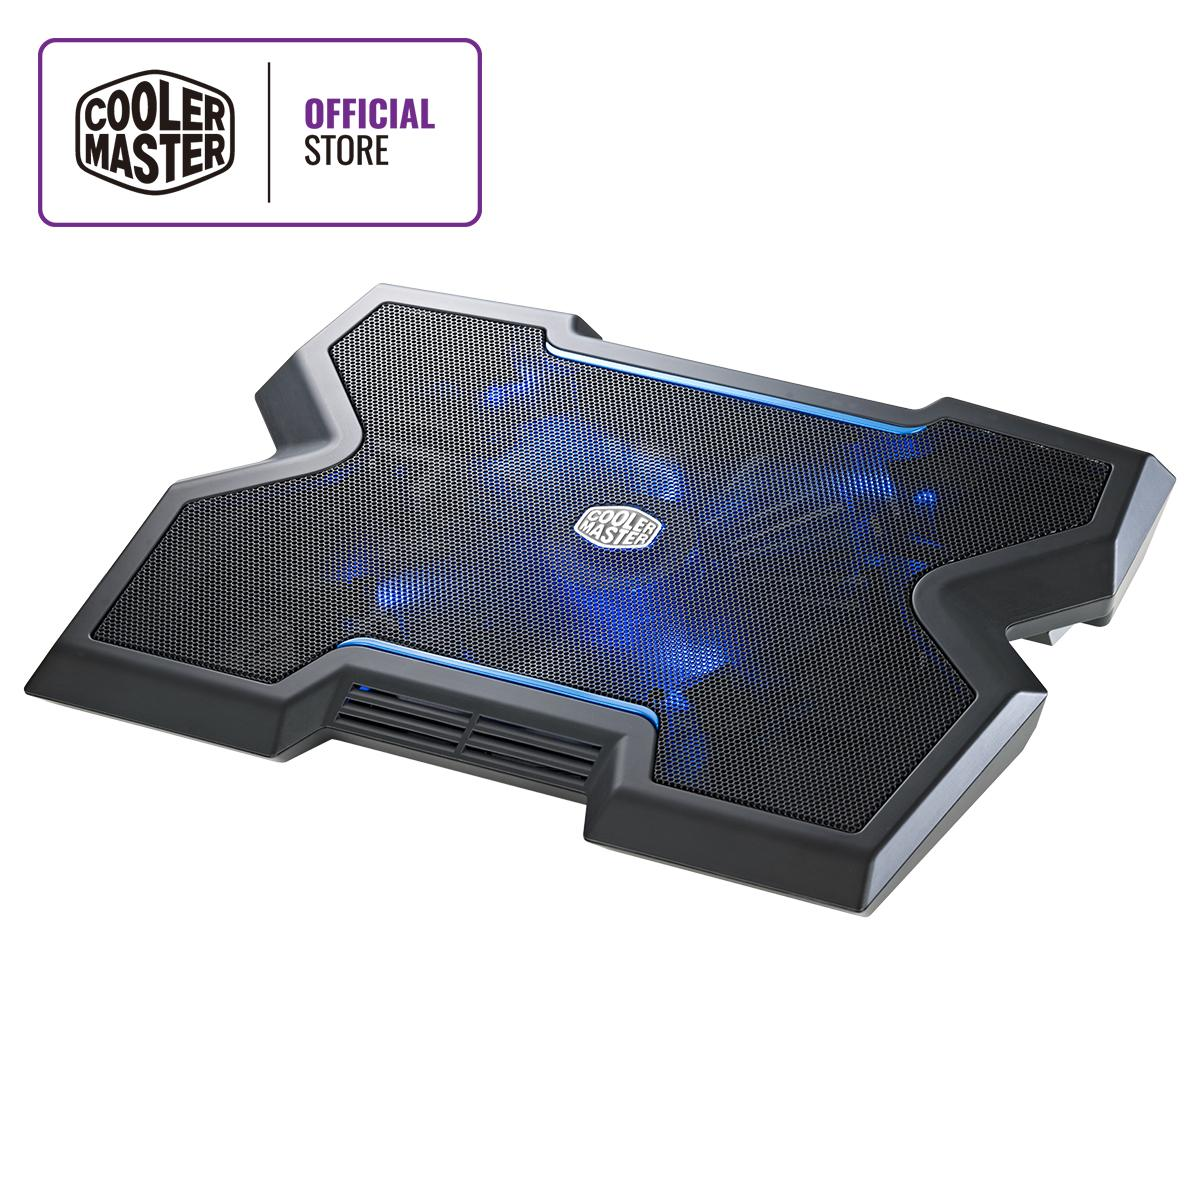 Cooler Master Notepal X3 200mm Blue Led Fan Gaming Notebook Cooler By Cooler Master Official Store.